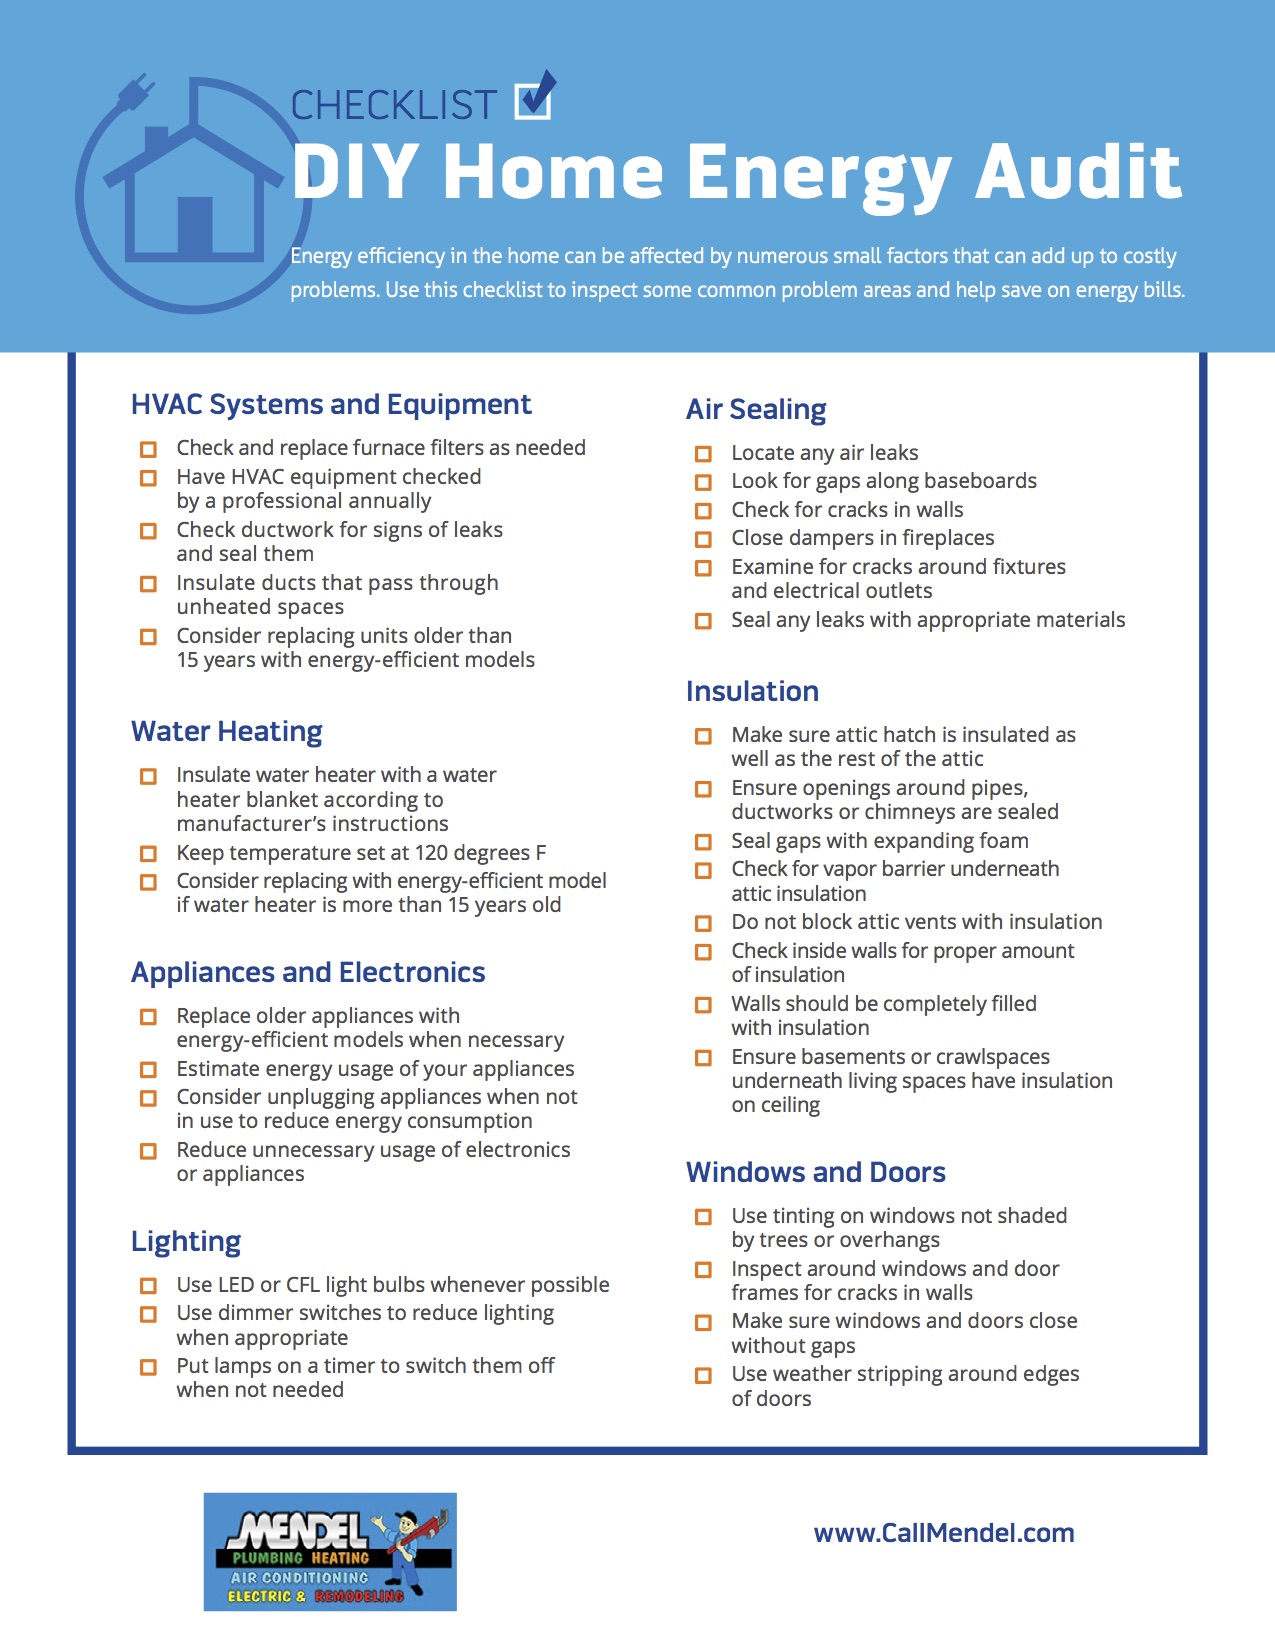 DIY Home Energy Audit Checklist